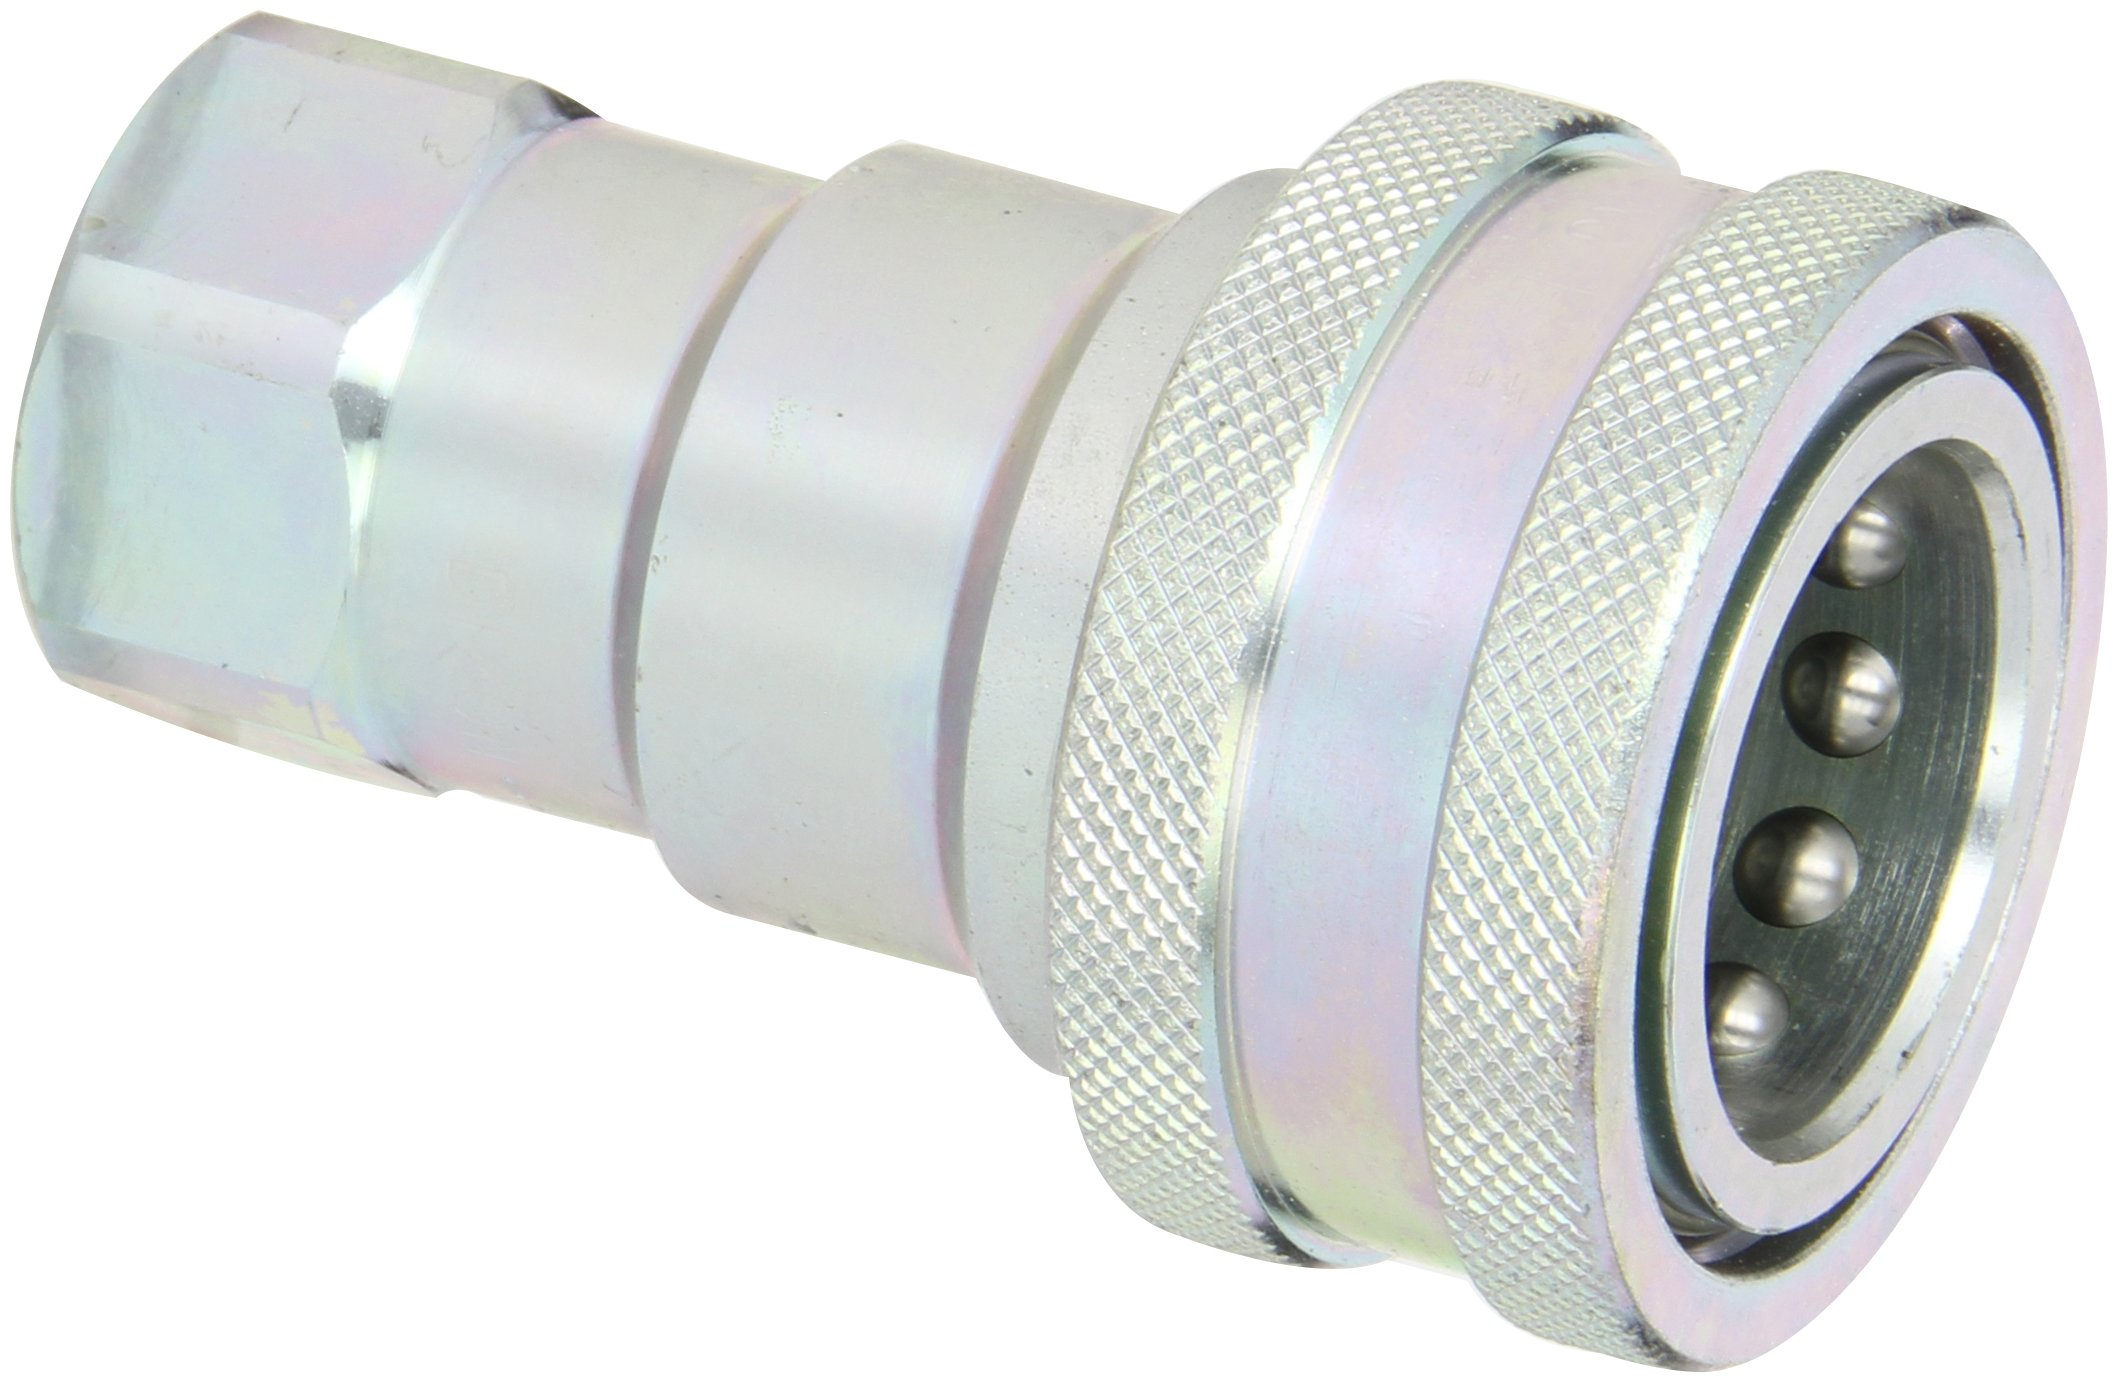 Dixon Valve 6HF6 Steel ISO-B Interchange Hydraulic Fitting, Coupler, 3/4'' Coupling x 3/4'' - 14 NPTF Female Thread